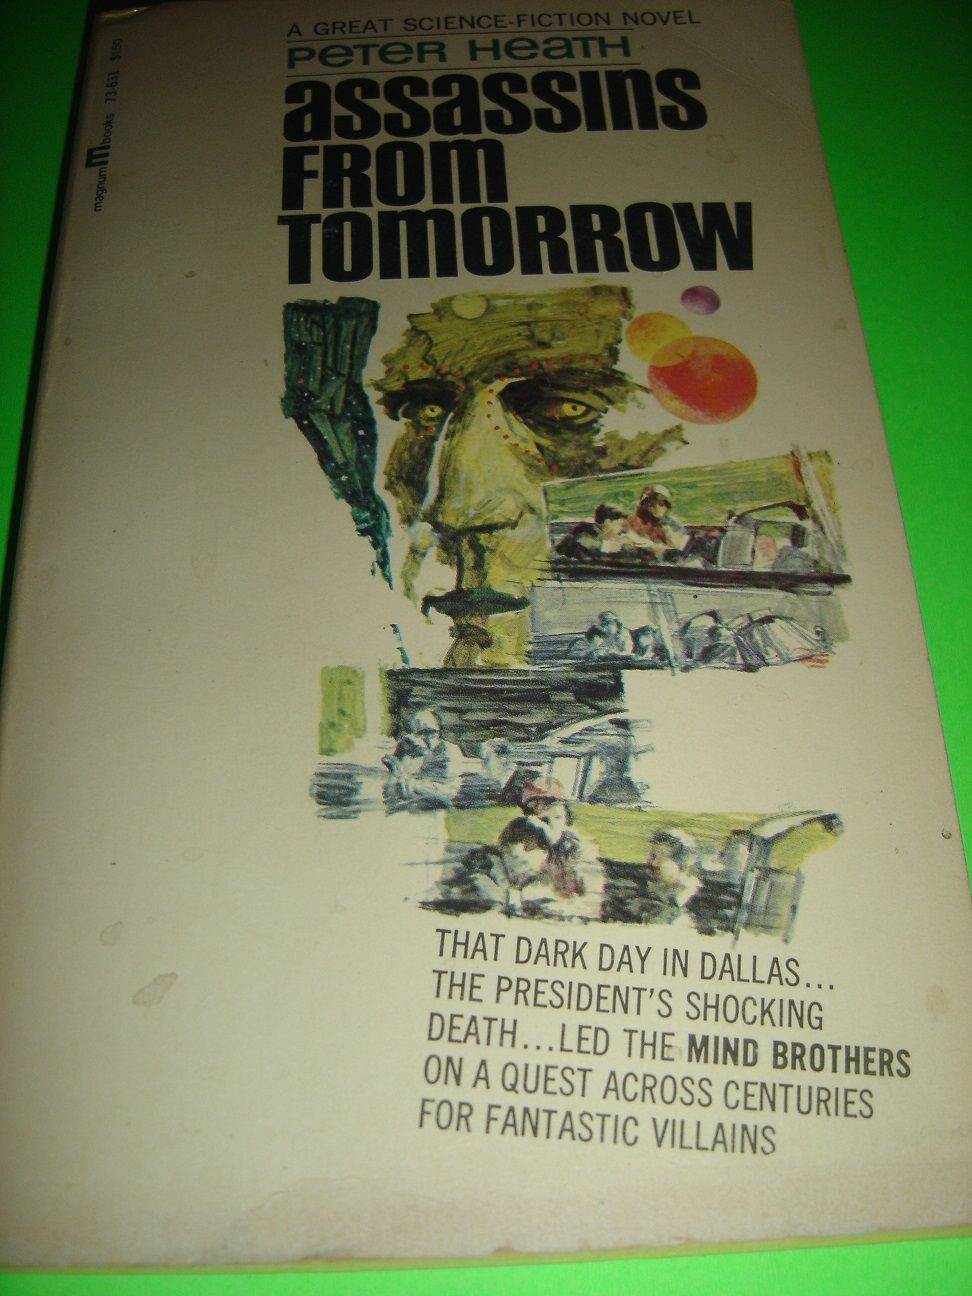 ASSASSINS FROM TOMORROW ~ By Peter Heath 1967 Lancer Paperback Book